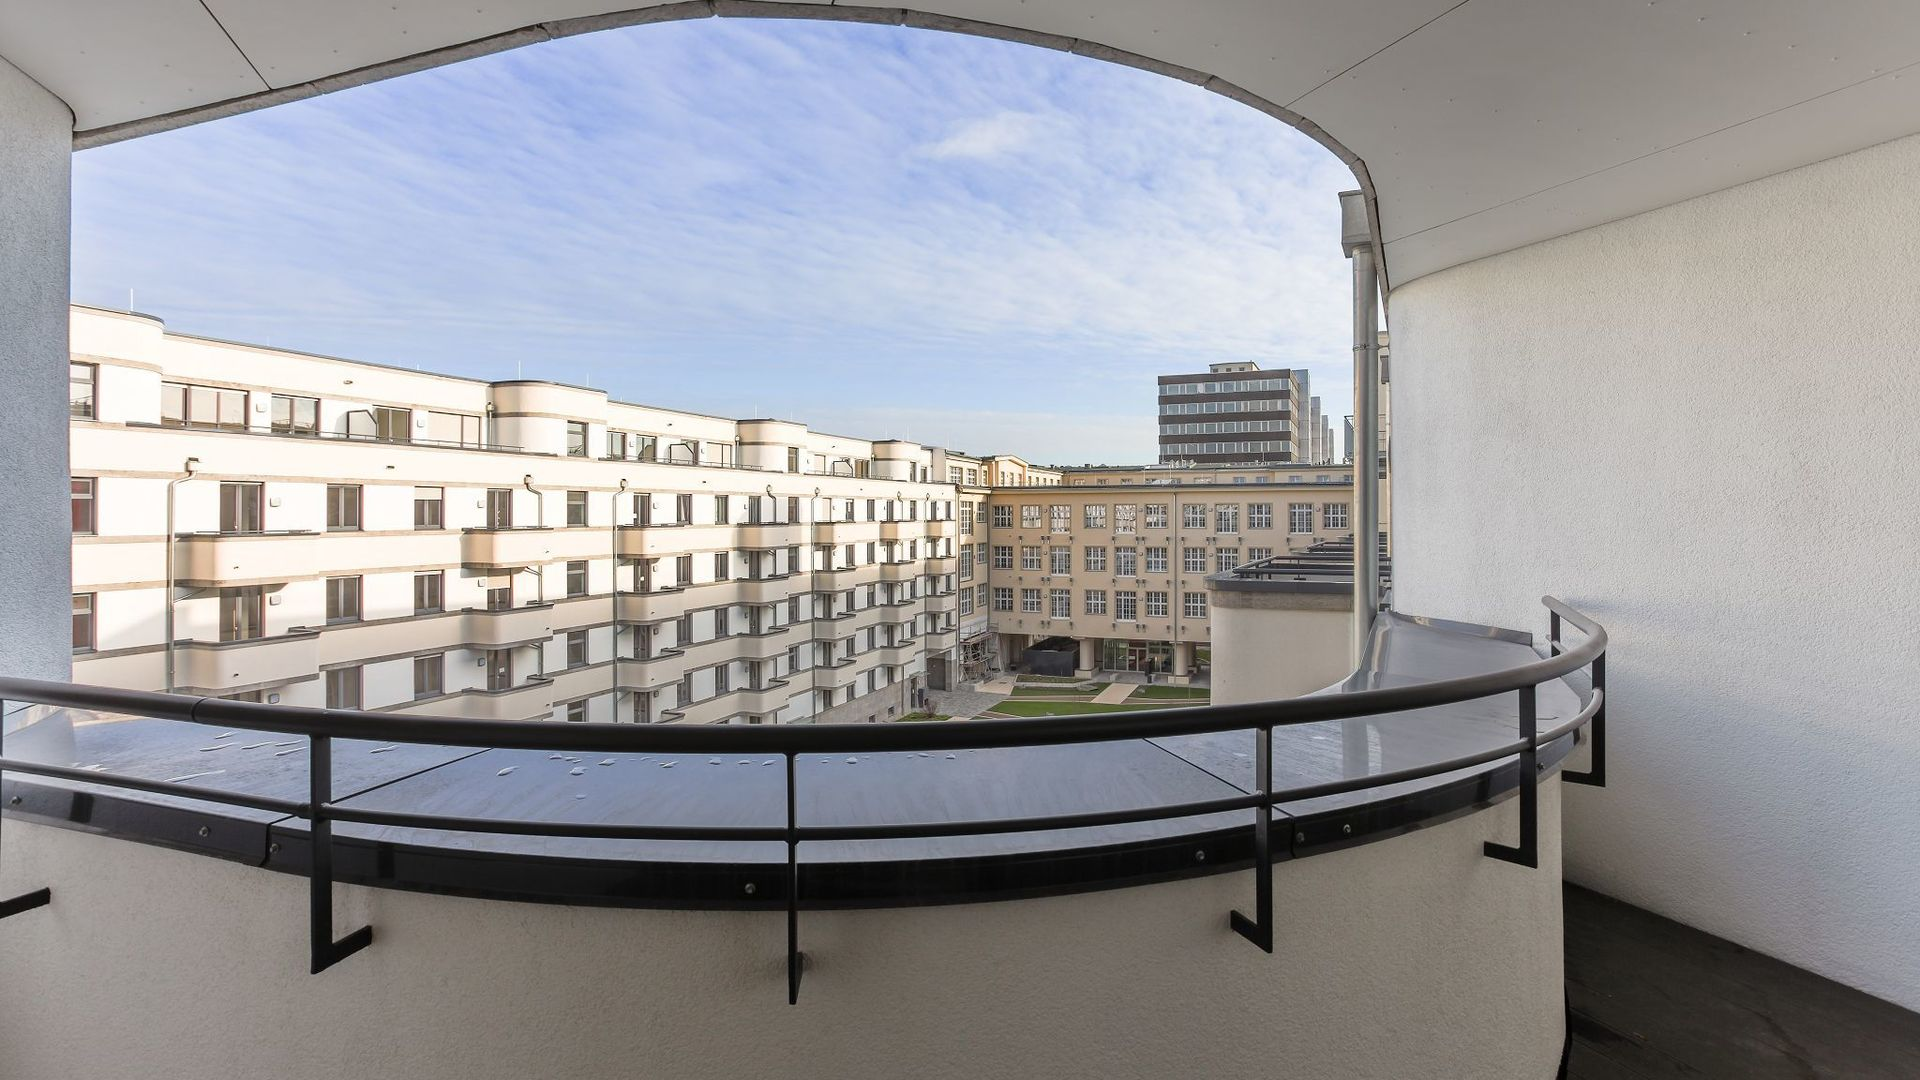 2 Bed Apartment At Prager Strasse 12 04103 Leipzig Germany For